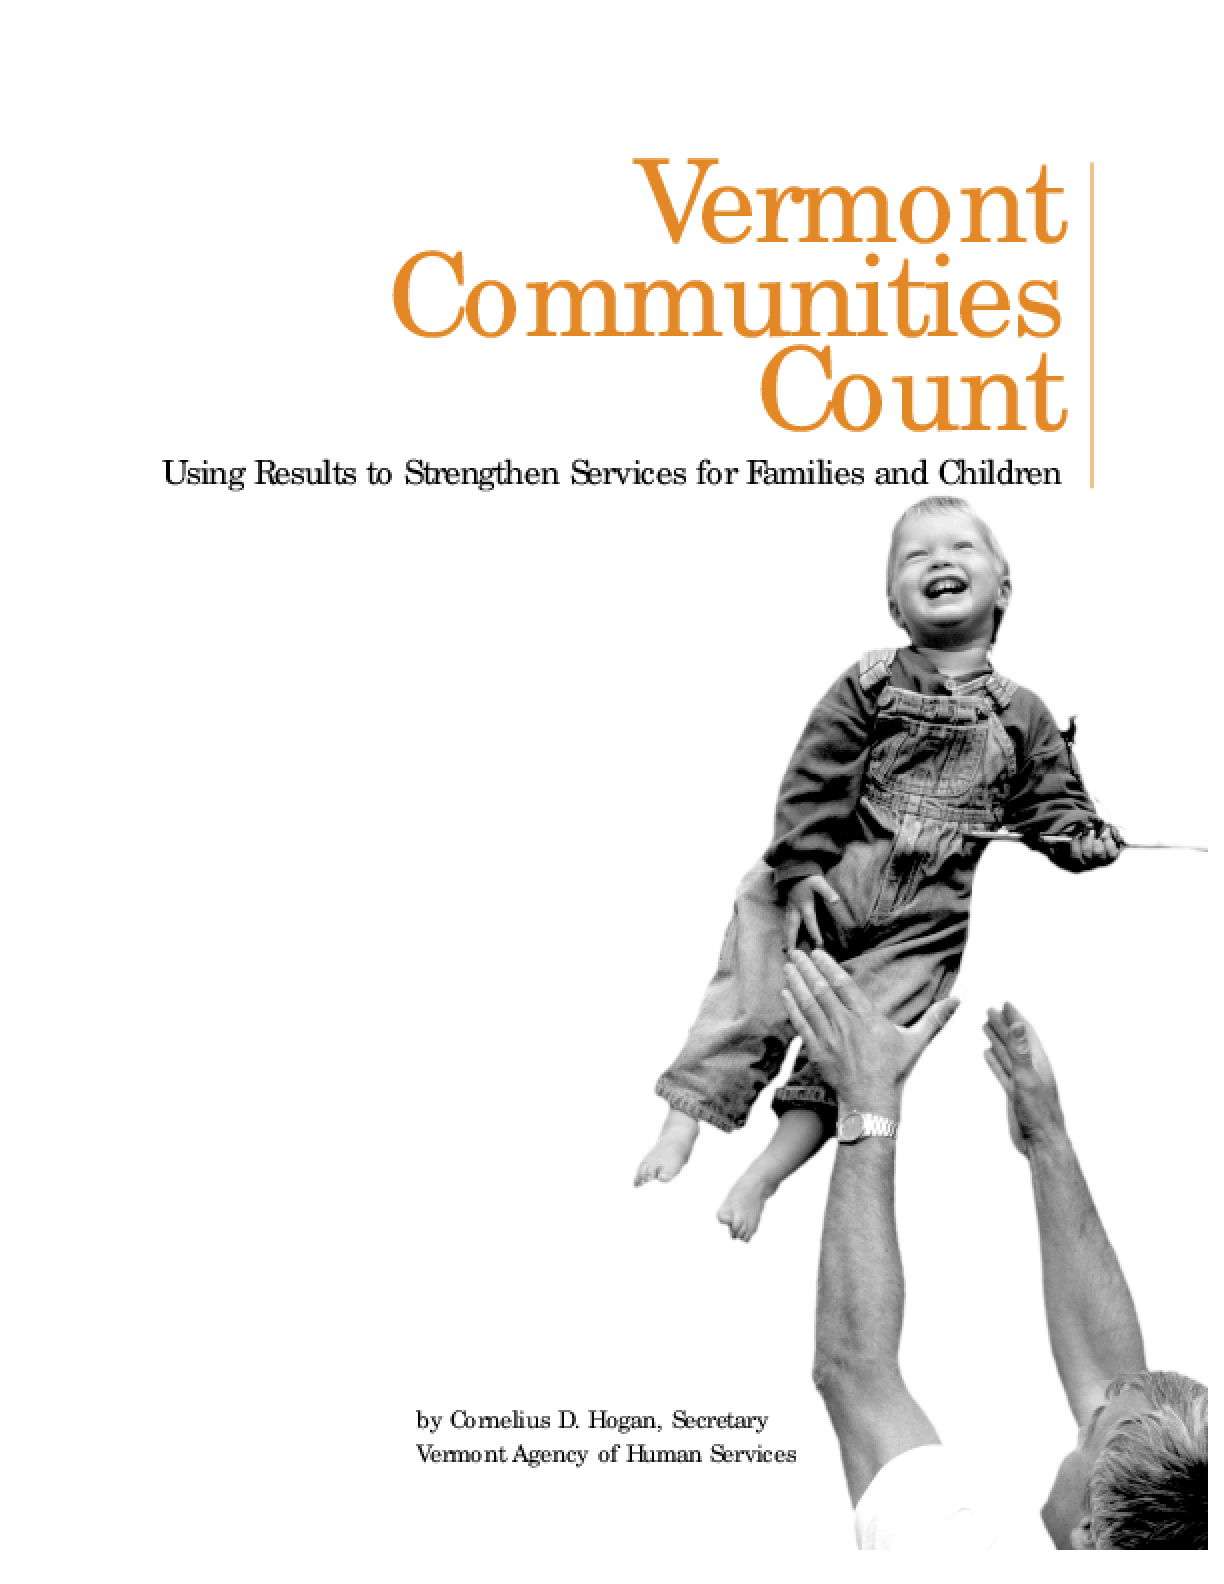 Vermont Communities Count: Using Results to Strengthen Services for Families and Children